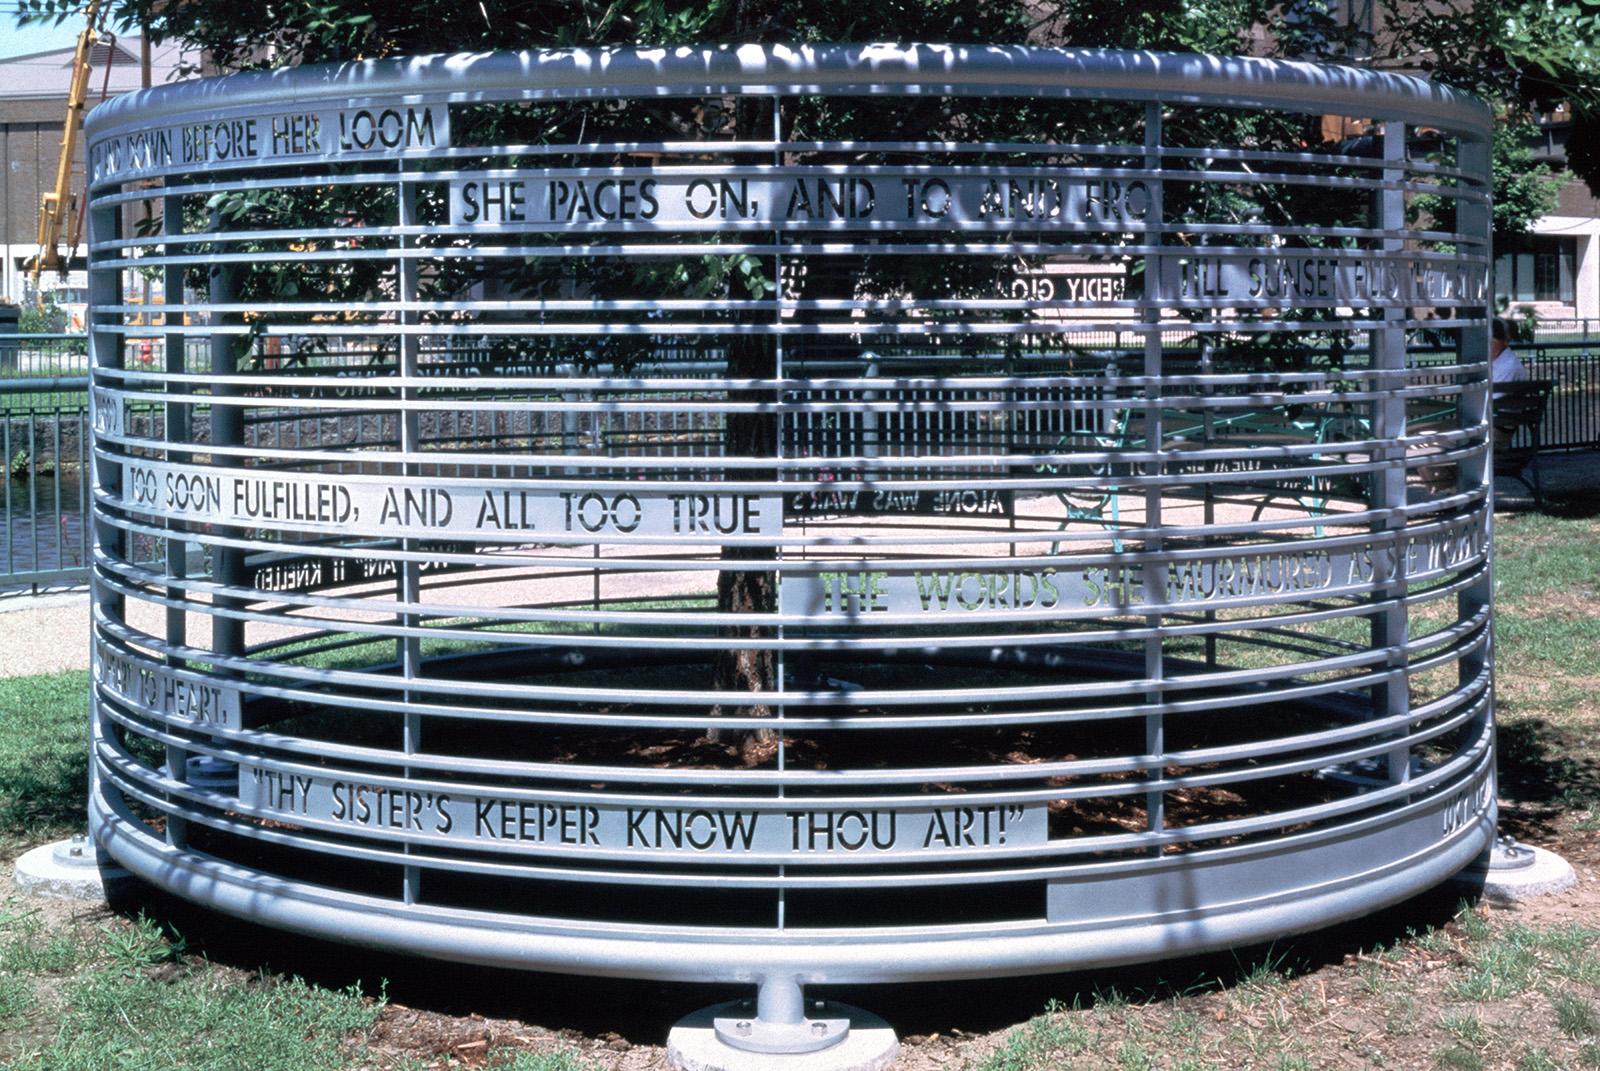 Circular Fence Sculpture with Poem, installation view 1997, Photo: B.T. Martin